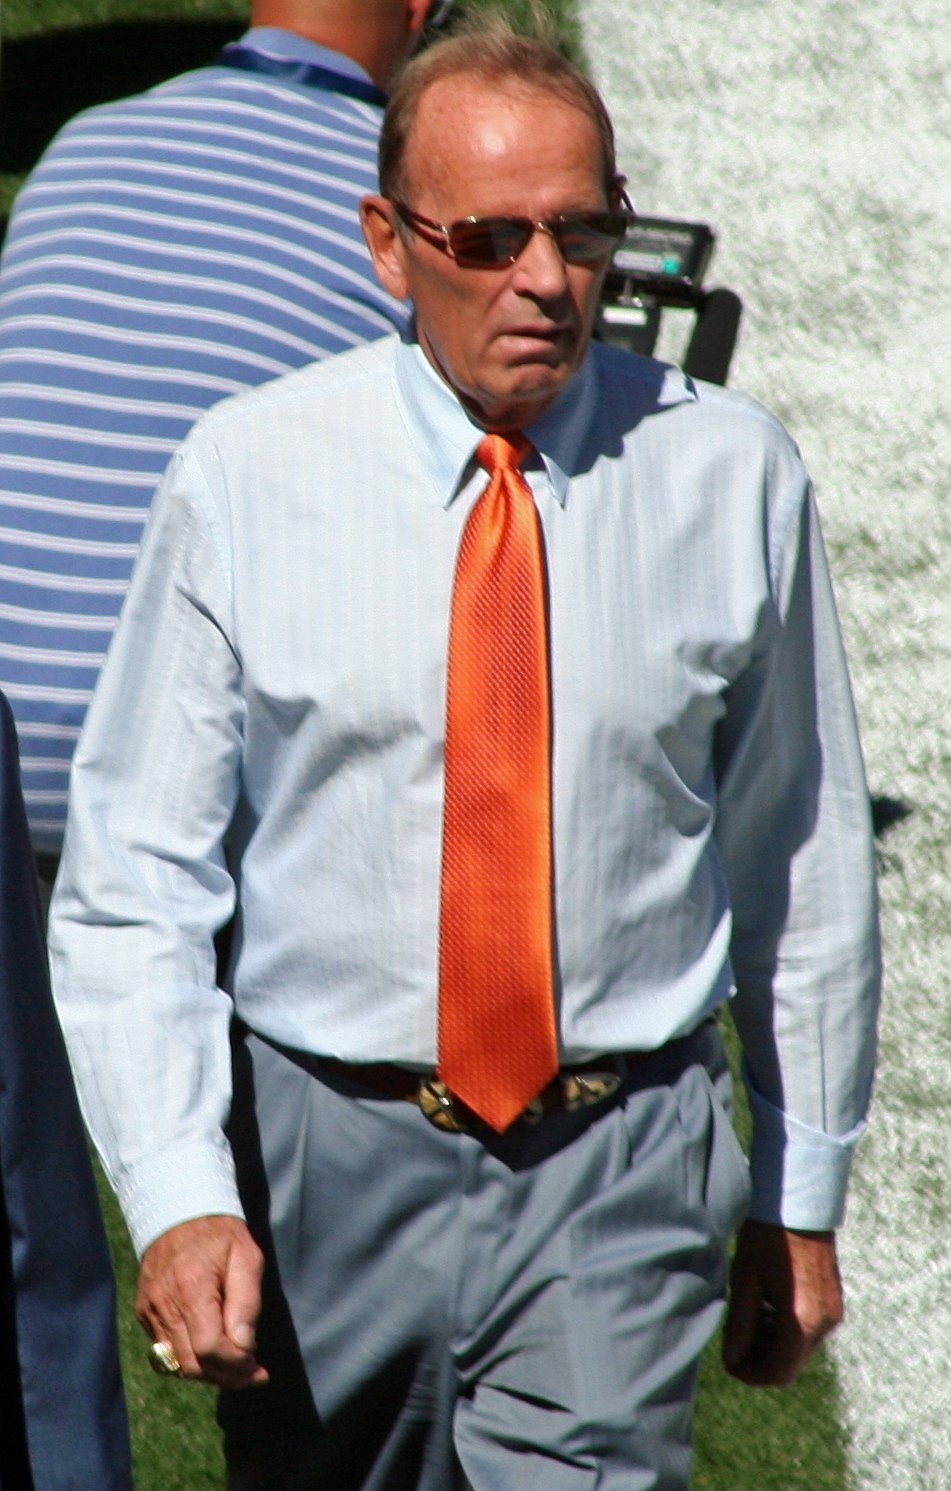 Candid photograph of Bowlen walking on a football sideline wearing blue-grey slacks, a light blue shirt with a red tie and sunglasses.